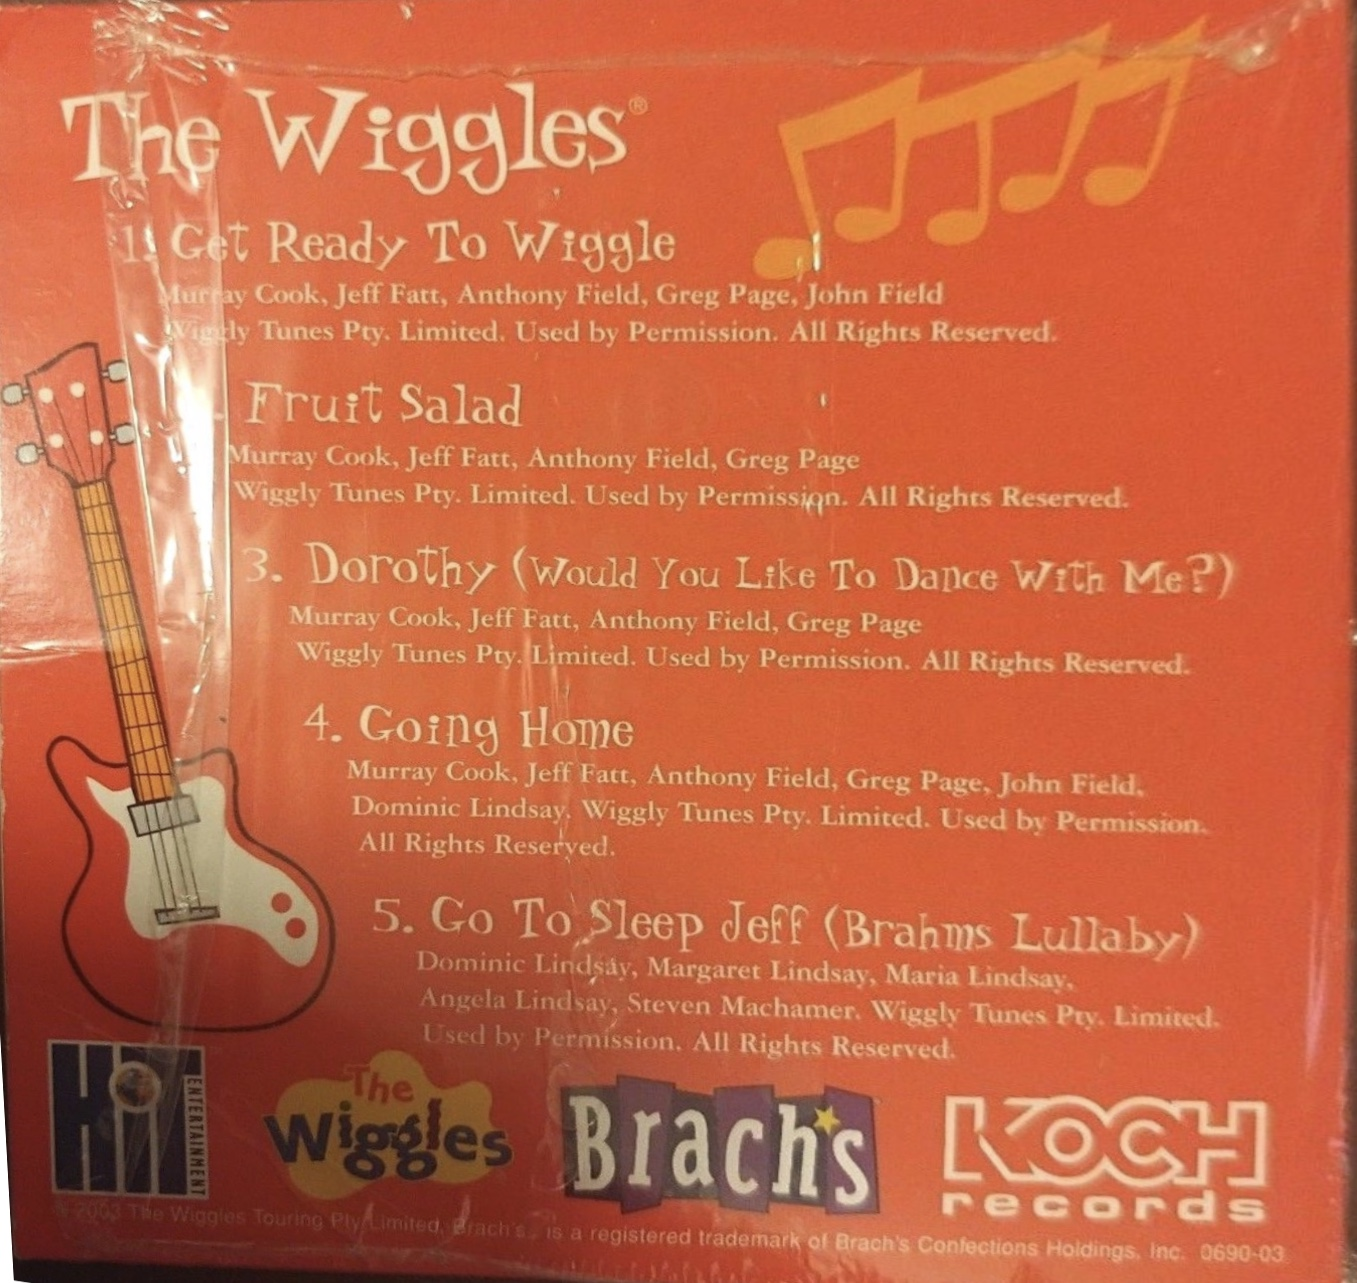 Compliments of Brach's and The Wiggles